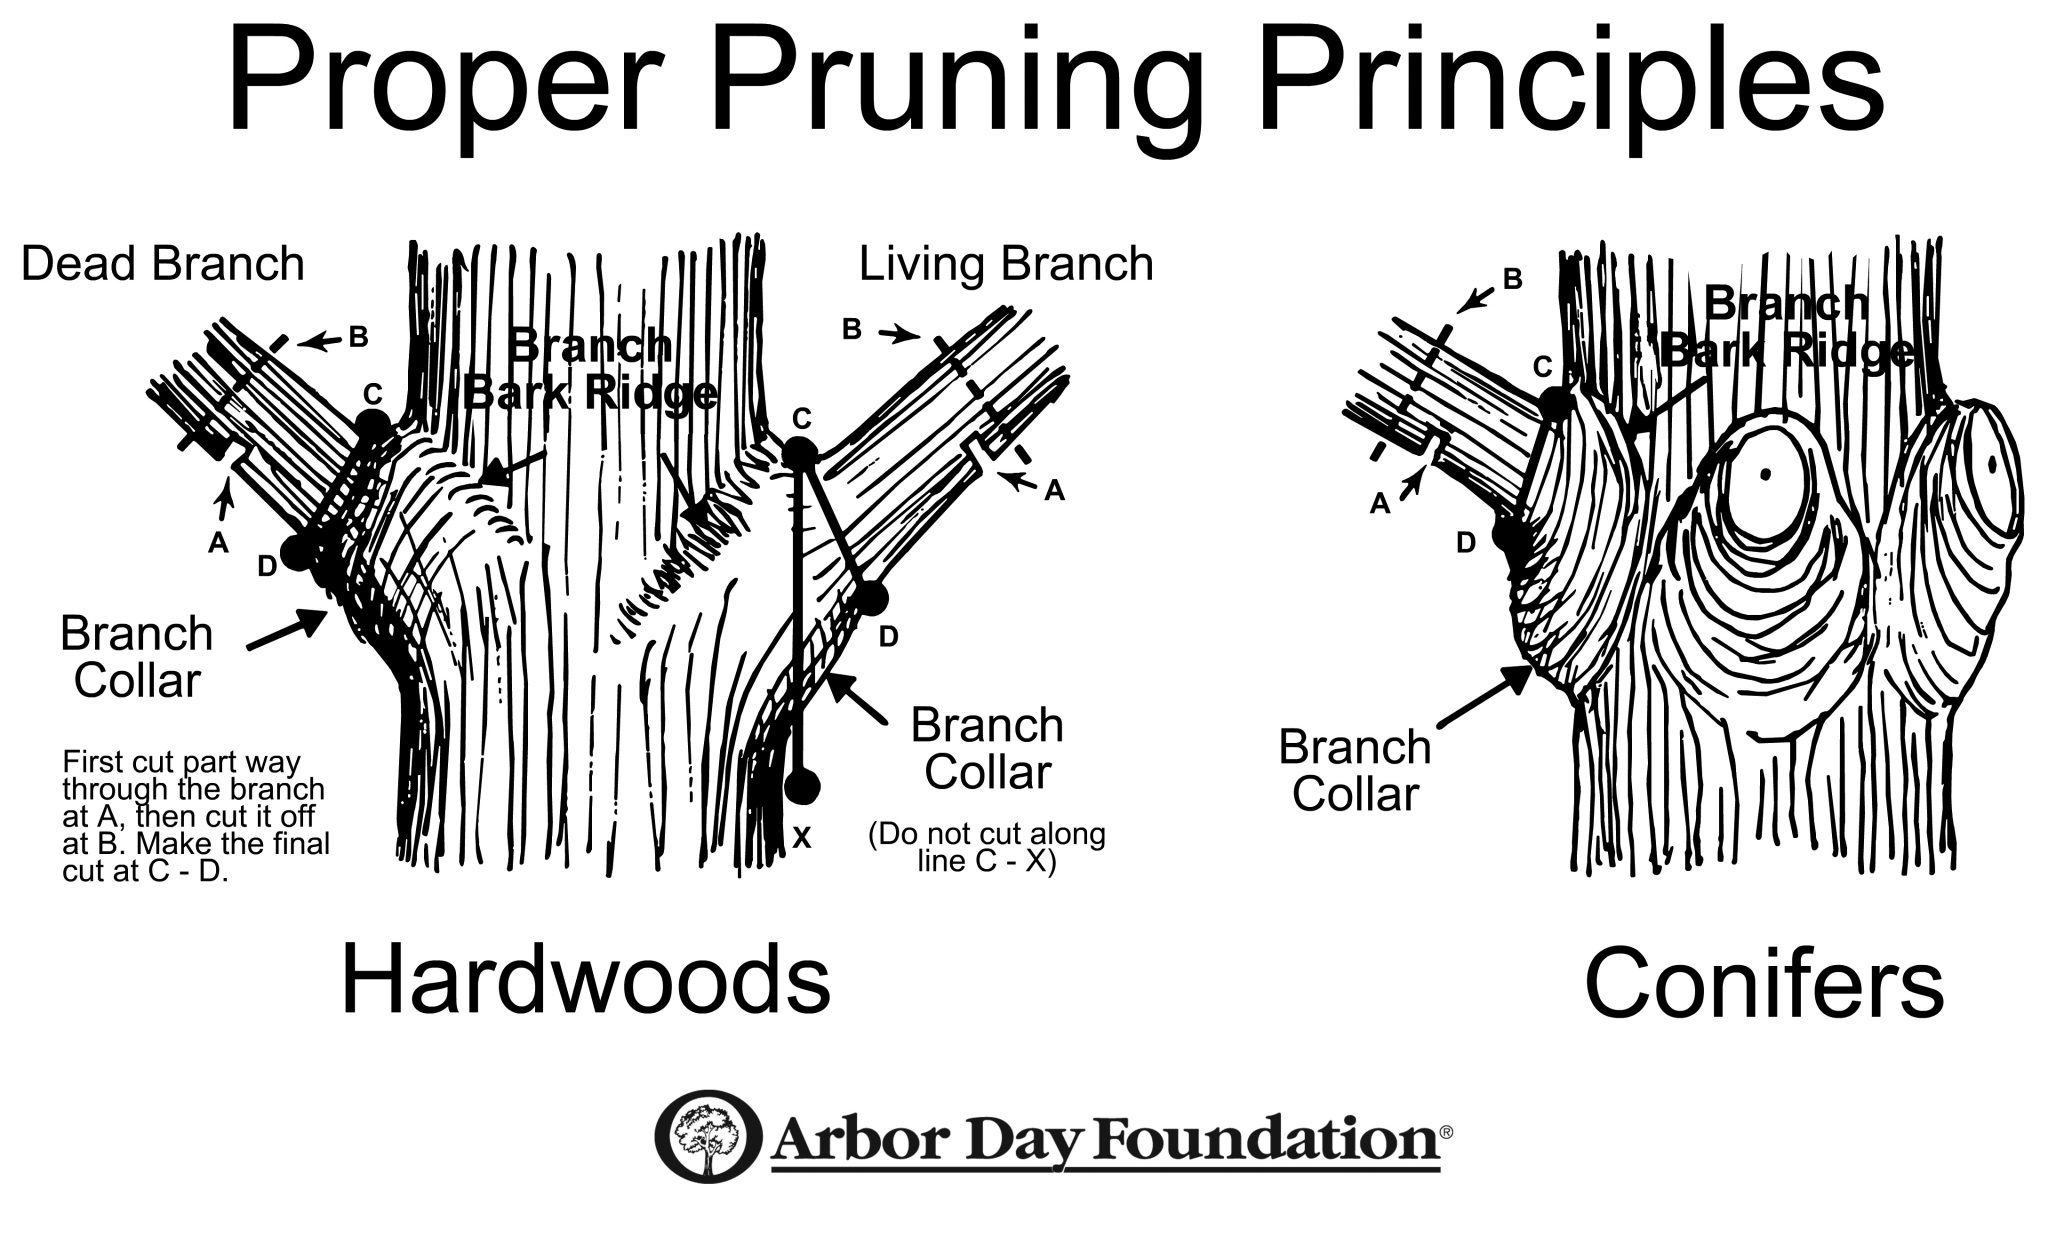 Late Winter Is Time To Prune